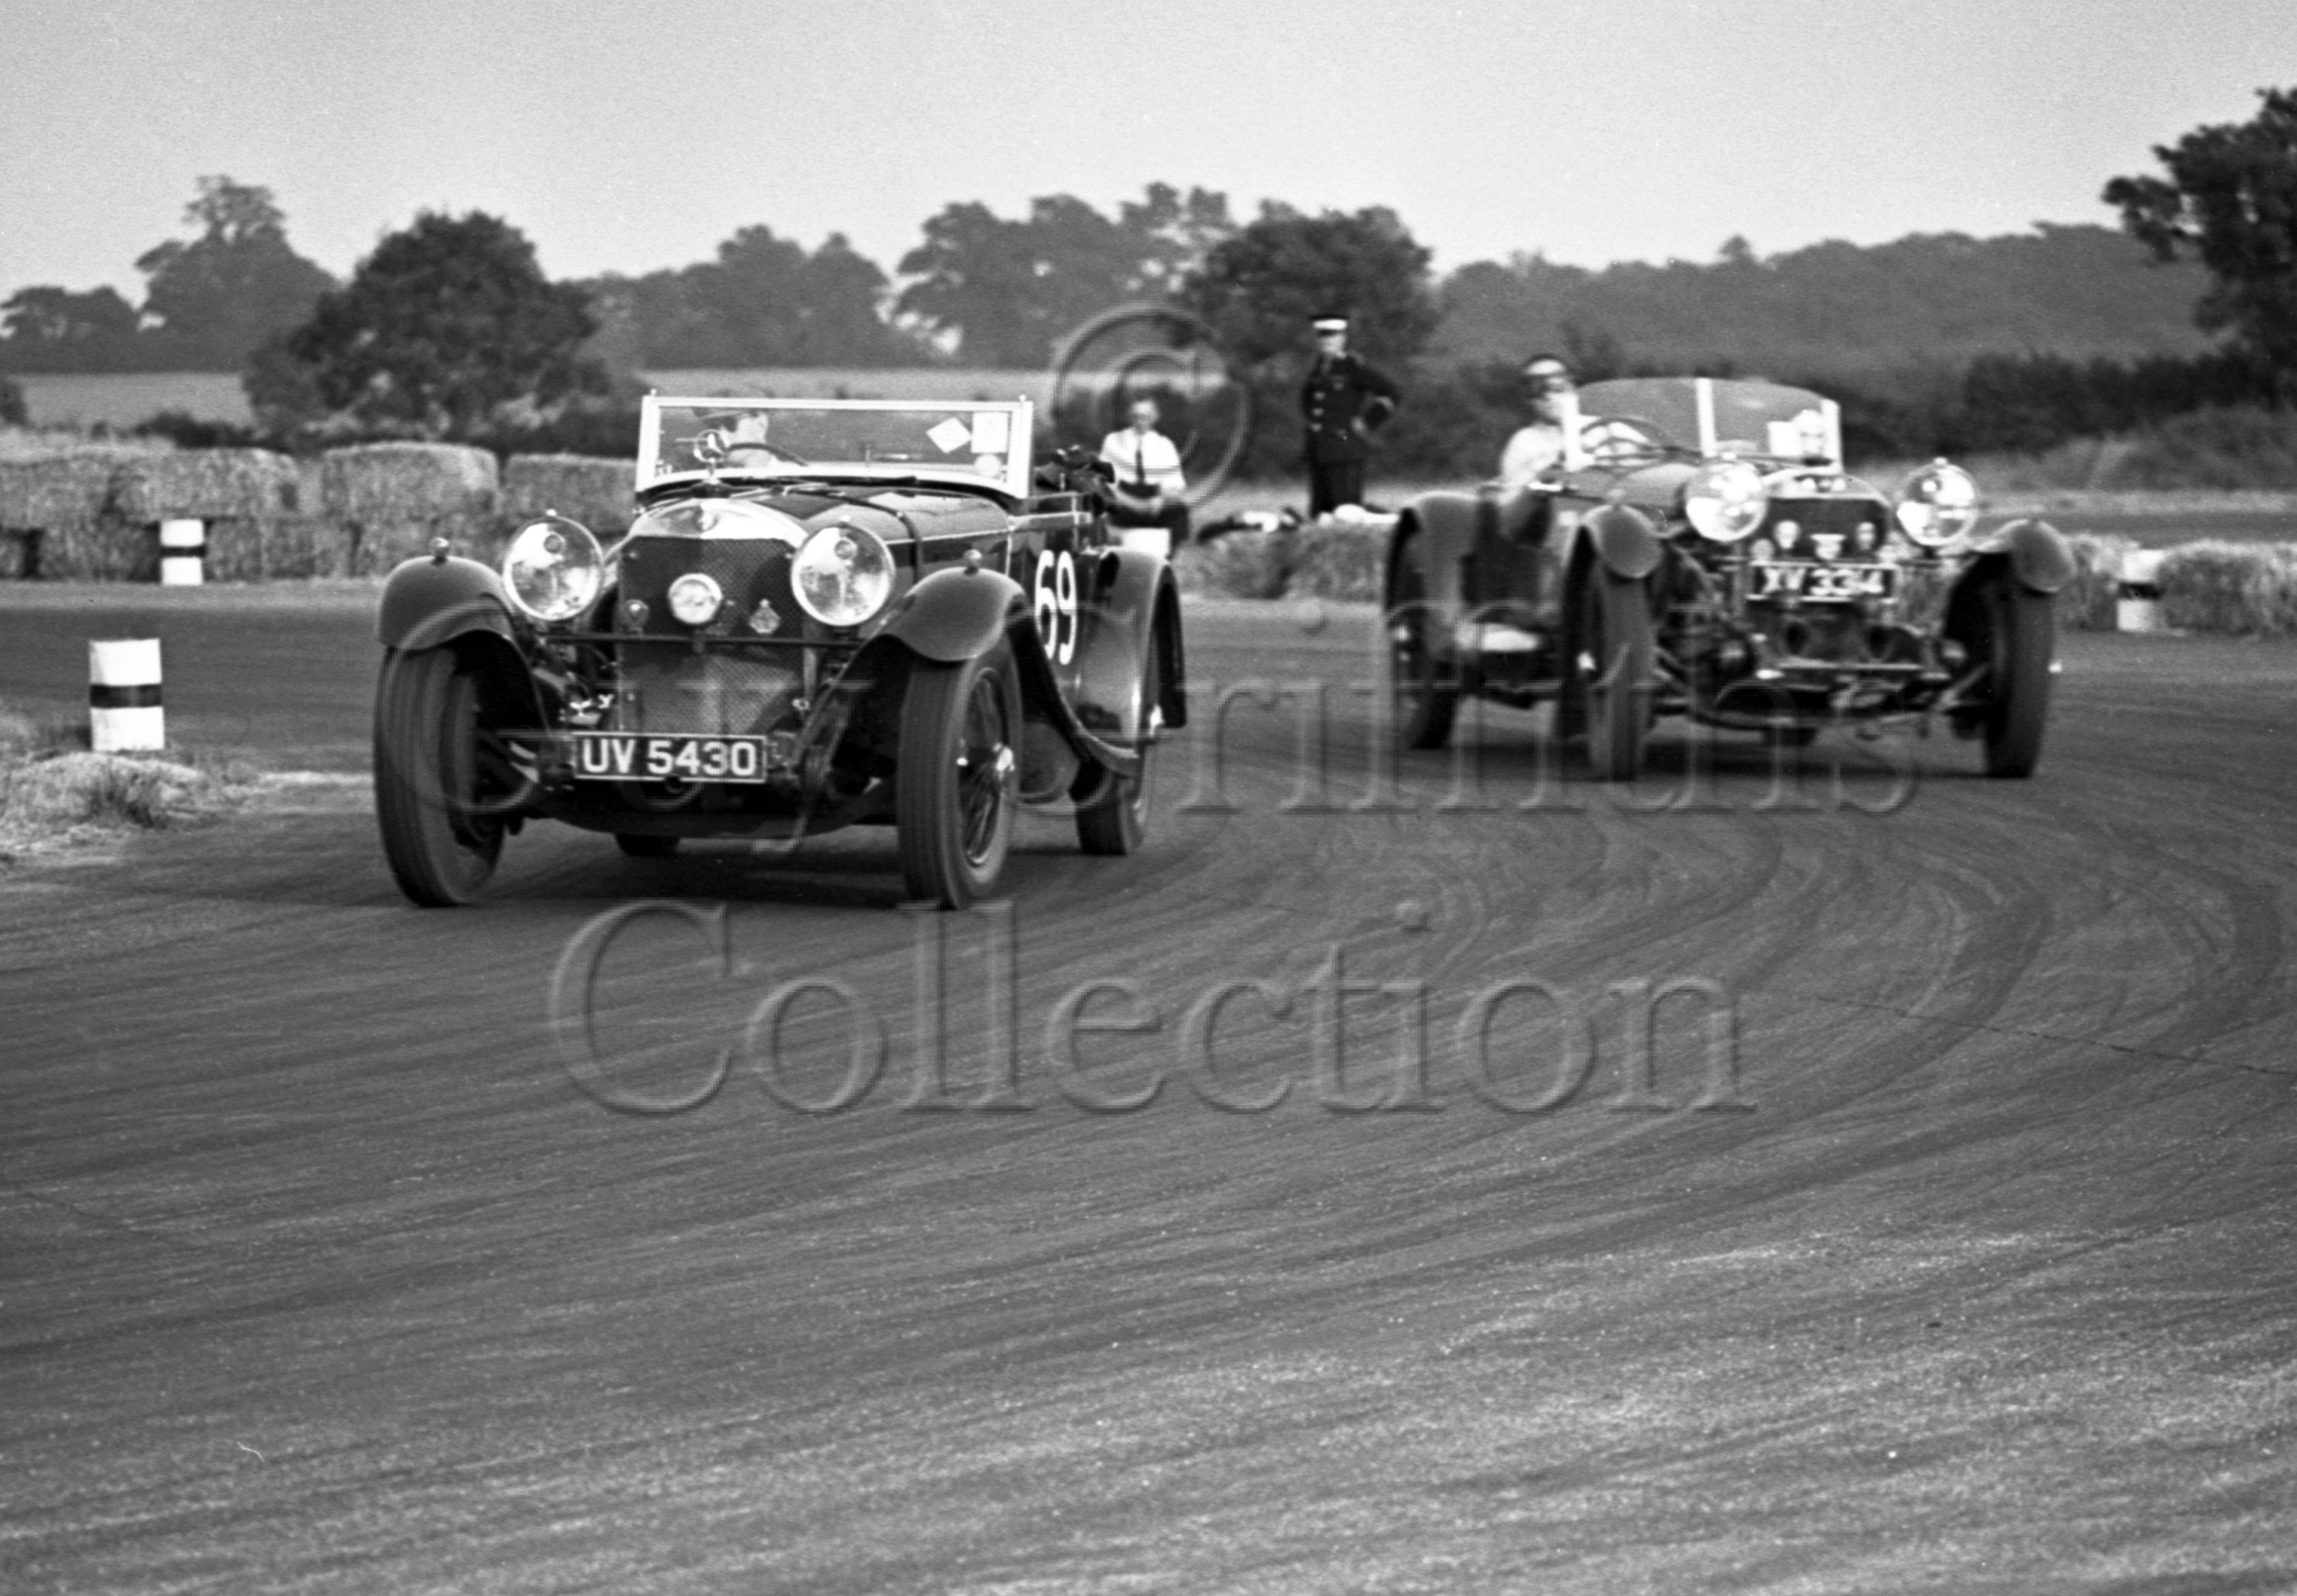 19-295–G-M-Crozier–Mercedes-Benz–Silverstone–23-07-1949-.jpg - The Guy Griffiths Collection